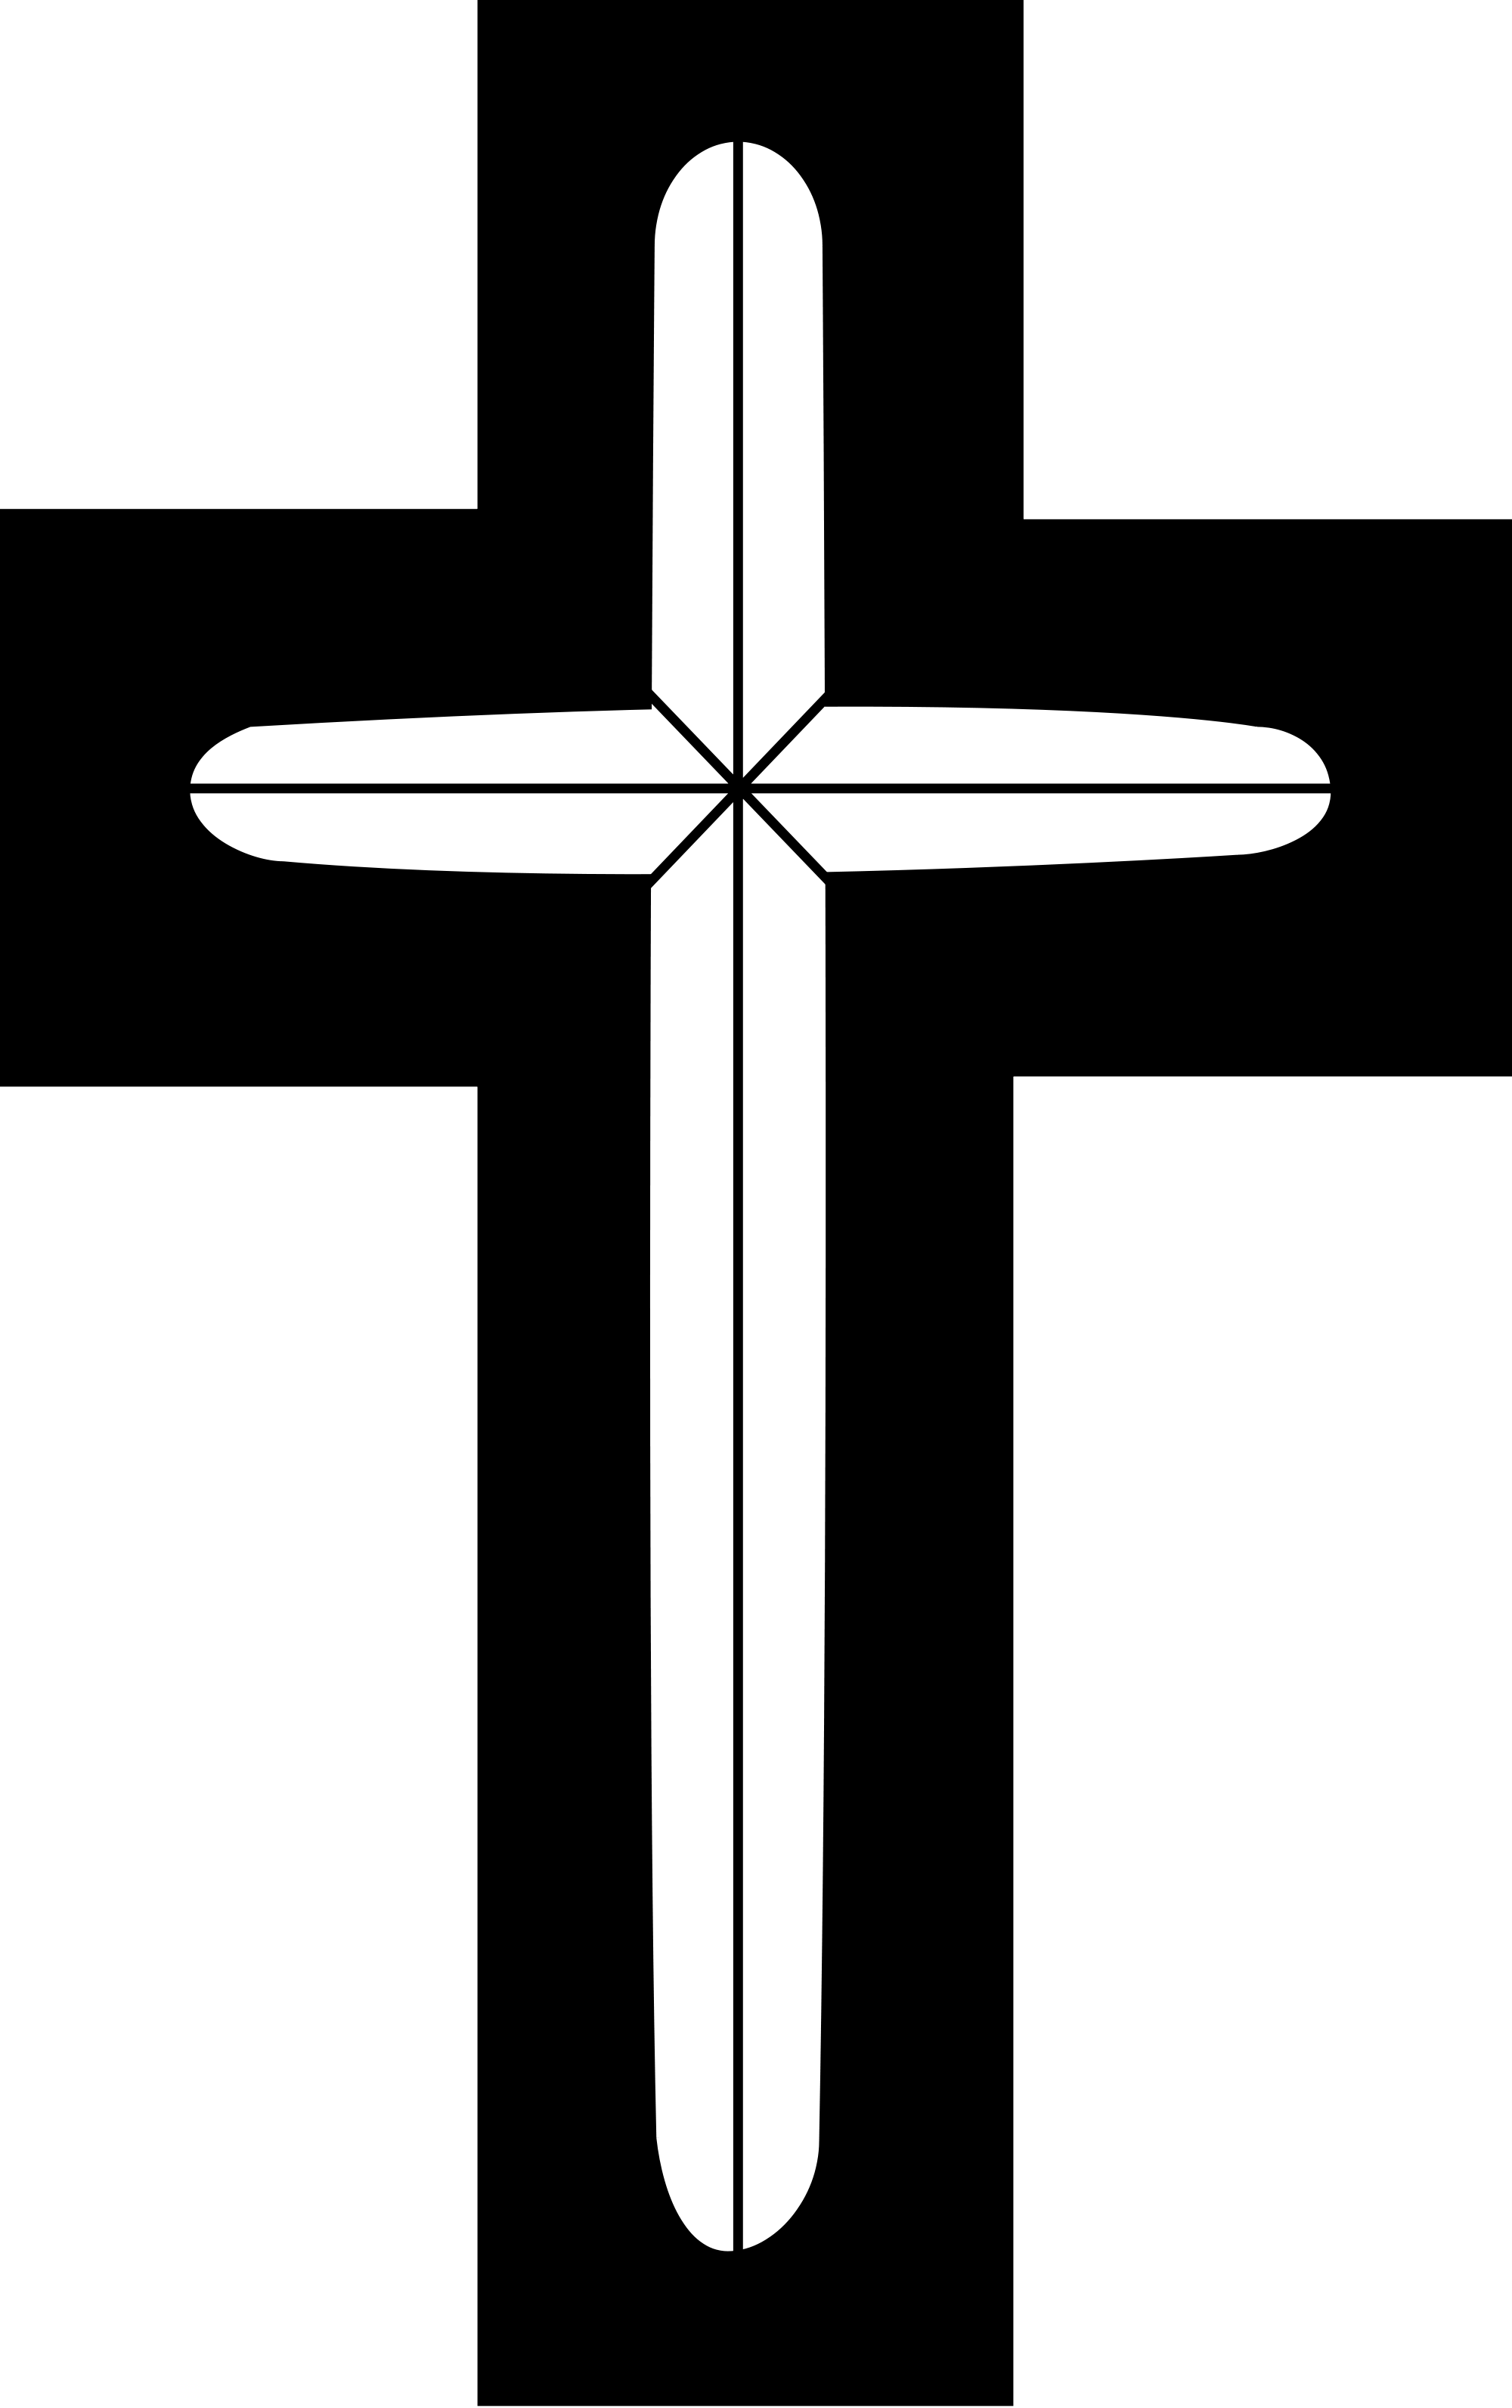 Black cross clipart graphic royalty free library Free Cross Clipart#4782778 - Shop of Clipart Library graphic royalty free library